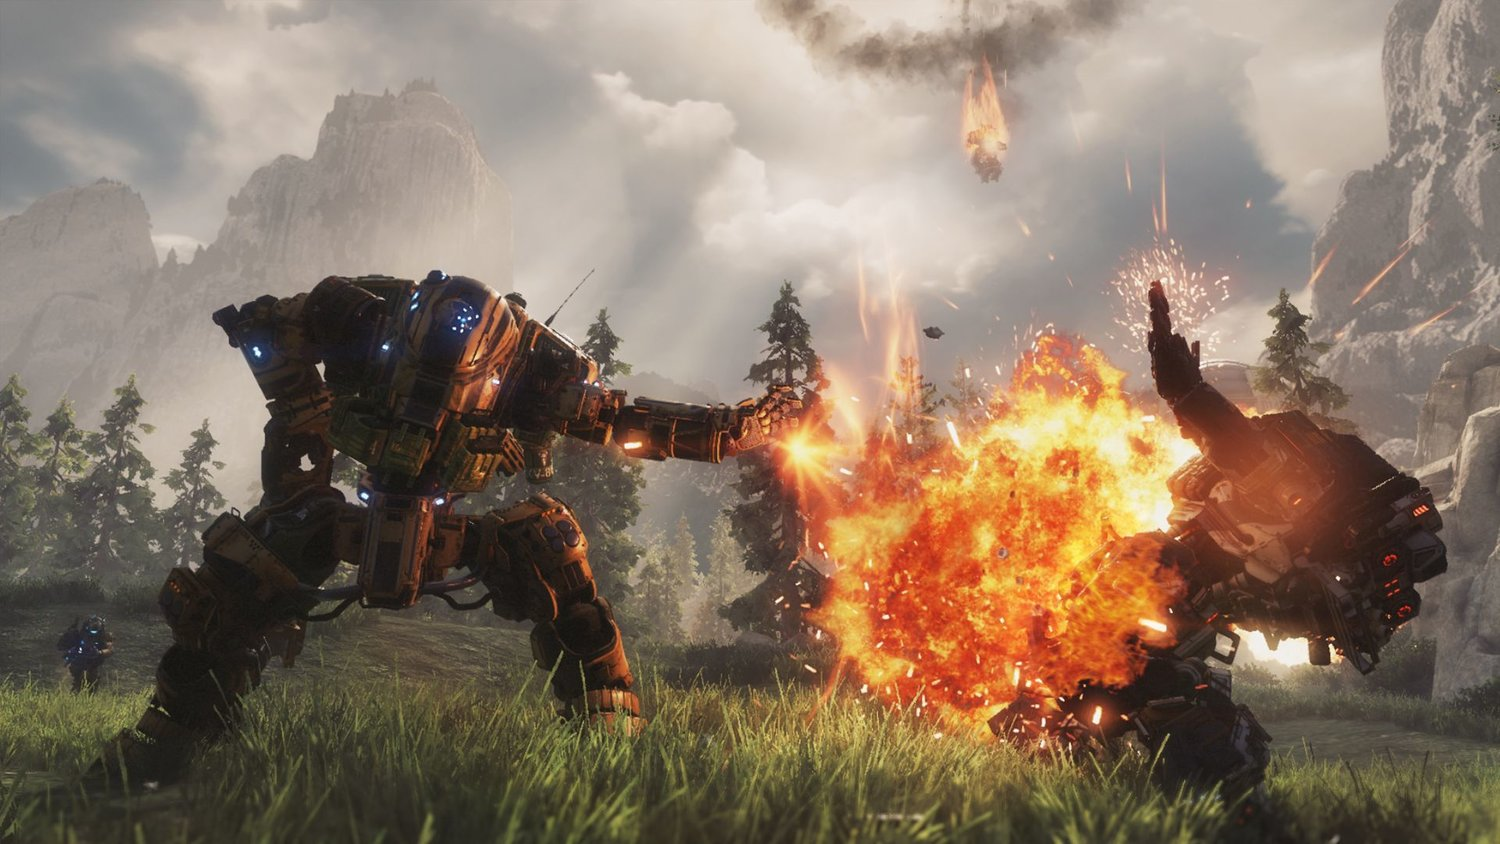 TITANFALL 2 Hosts Free Weekend With New Content And Massive Discount